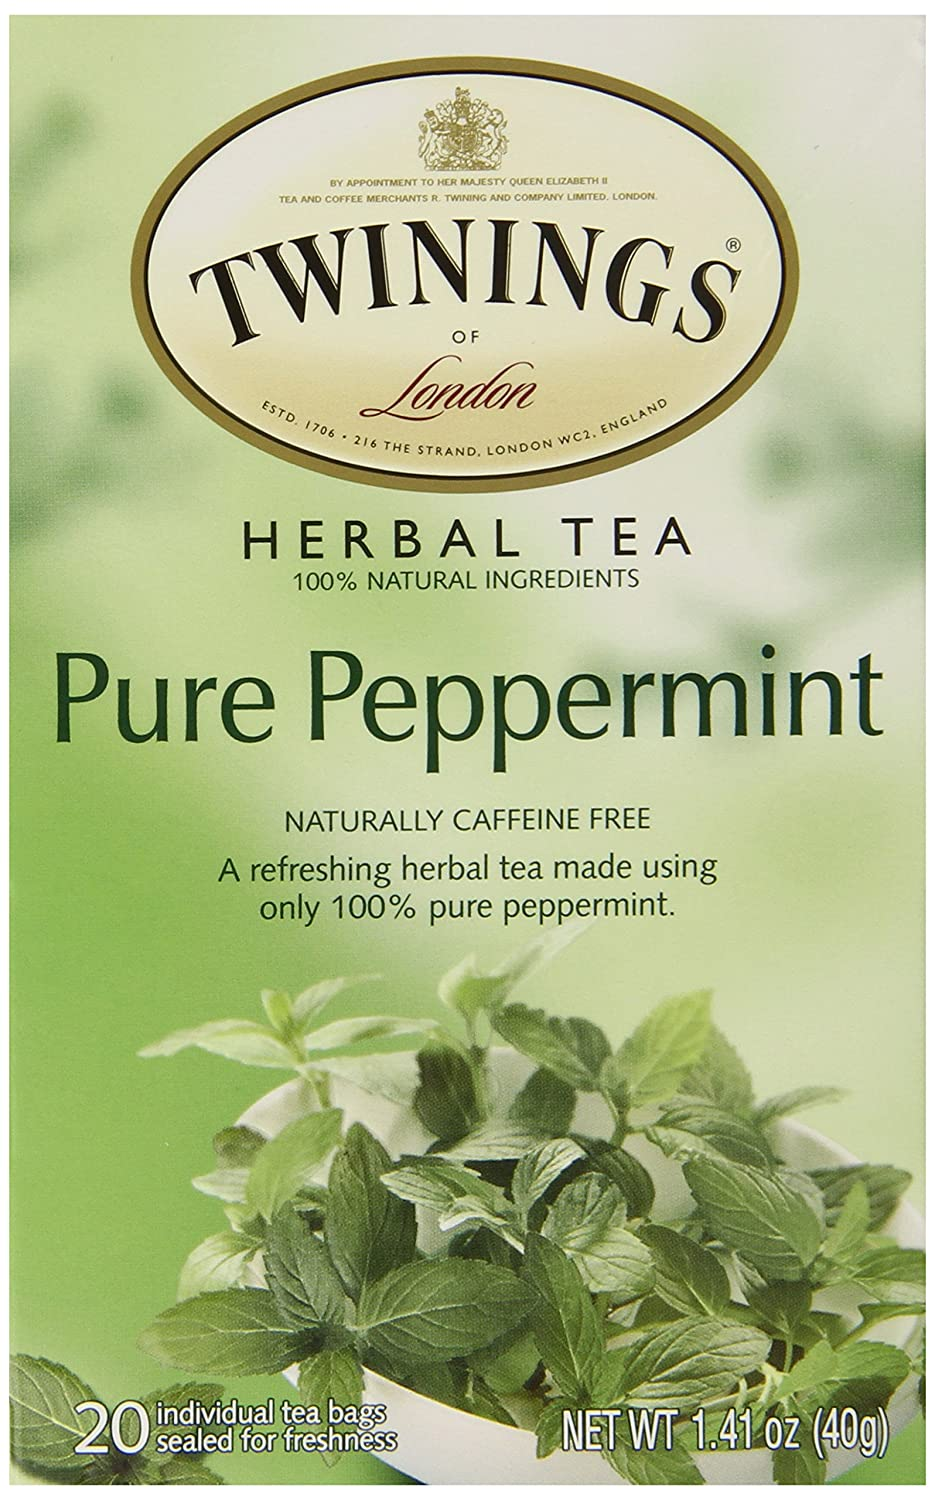 Cheapest amazon herbs - Amazon Com Twinings Pure Peppermint Herbal Tea 1 41 Ounce Box 20 Count Grocery Gourmet Food